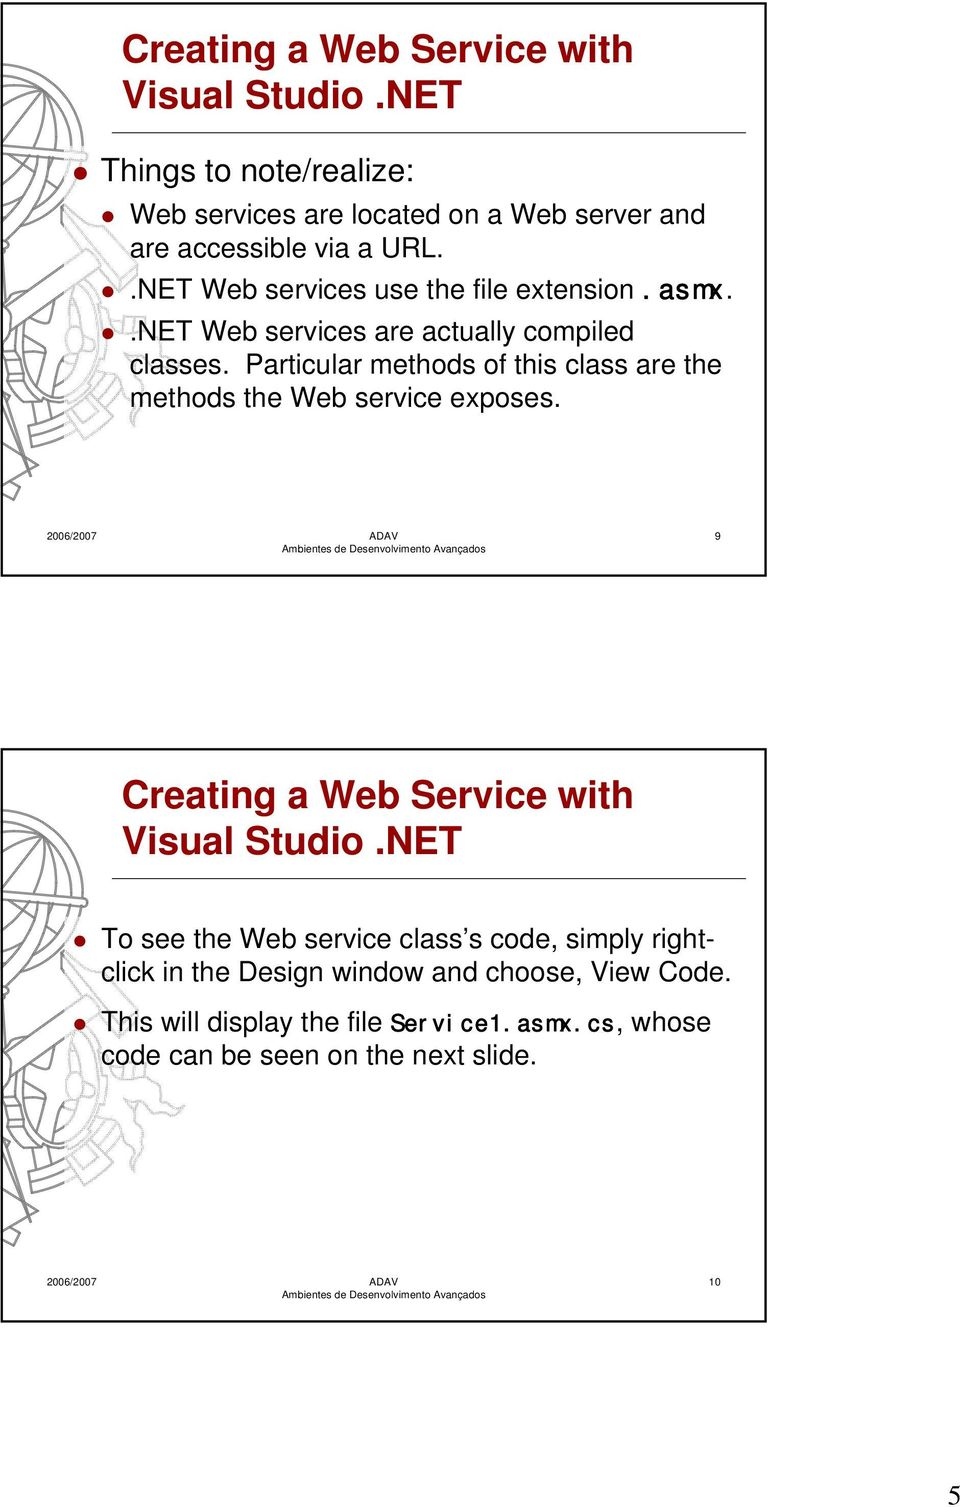 .NET Web services use the file extension.asmx..net Web services are actually compiled classes.